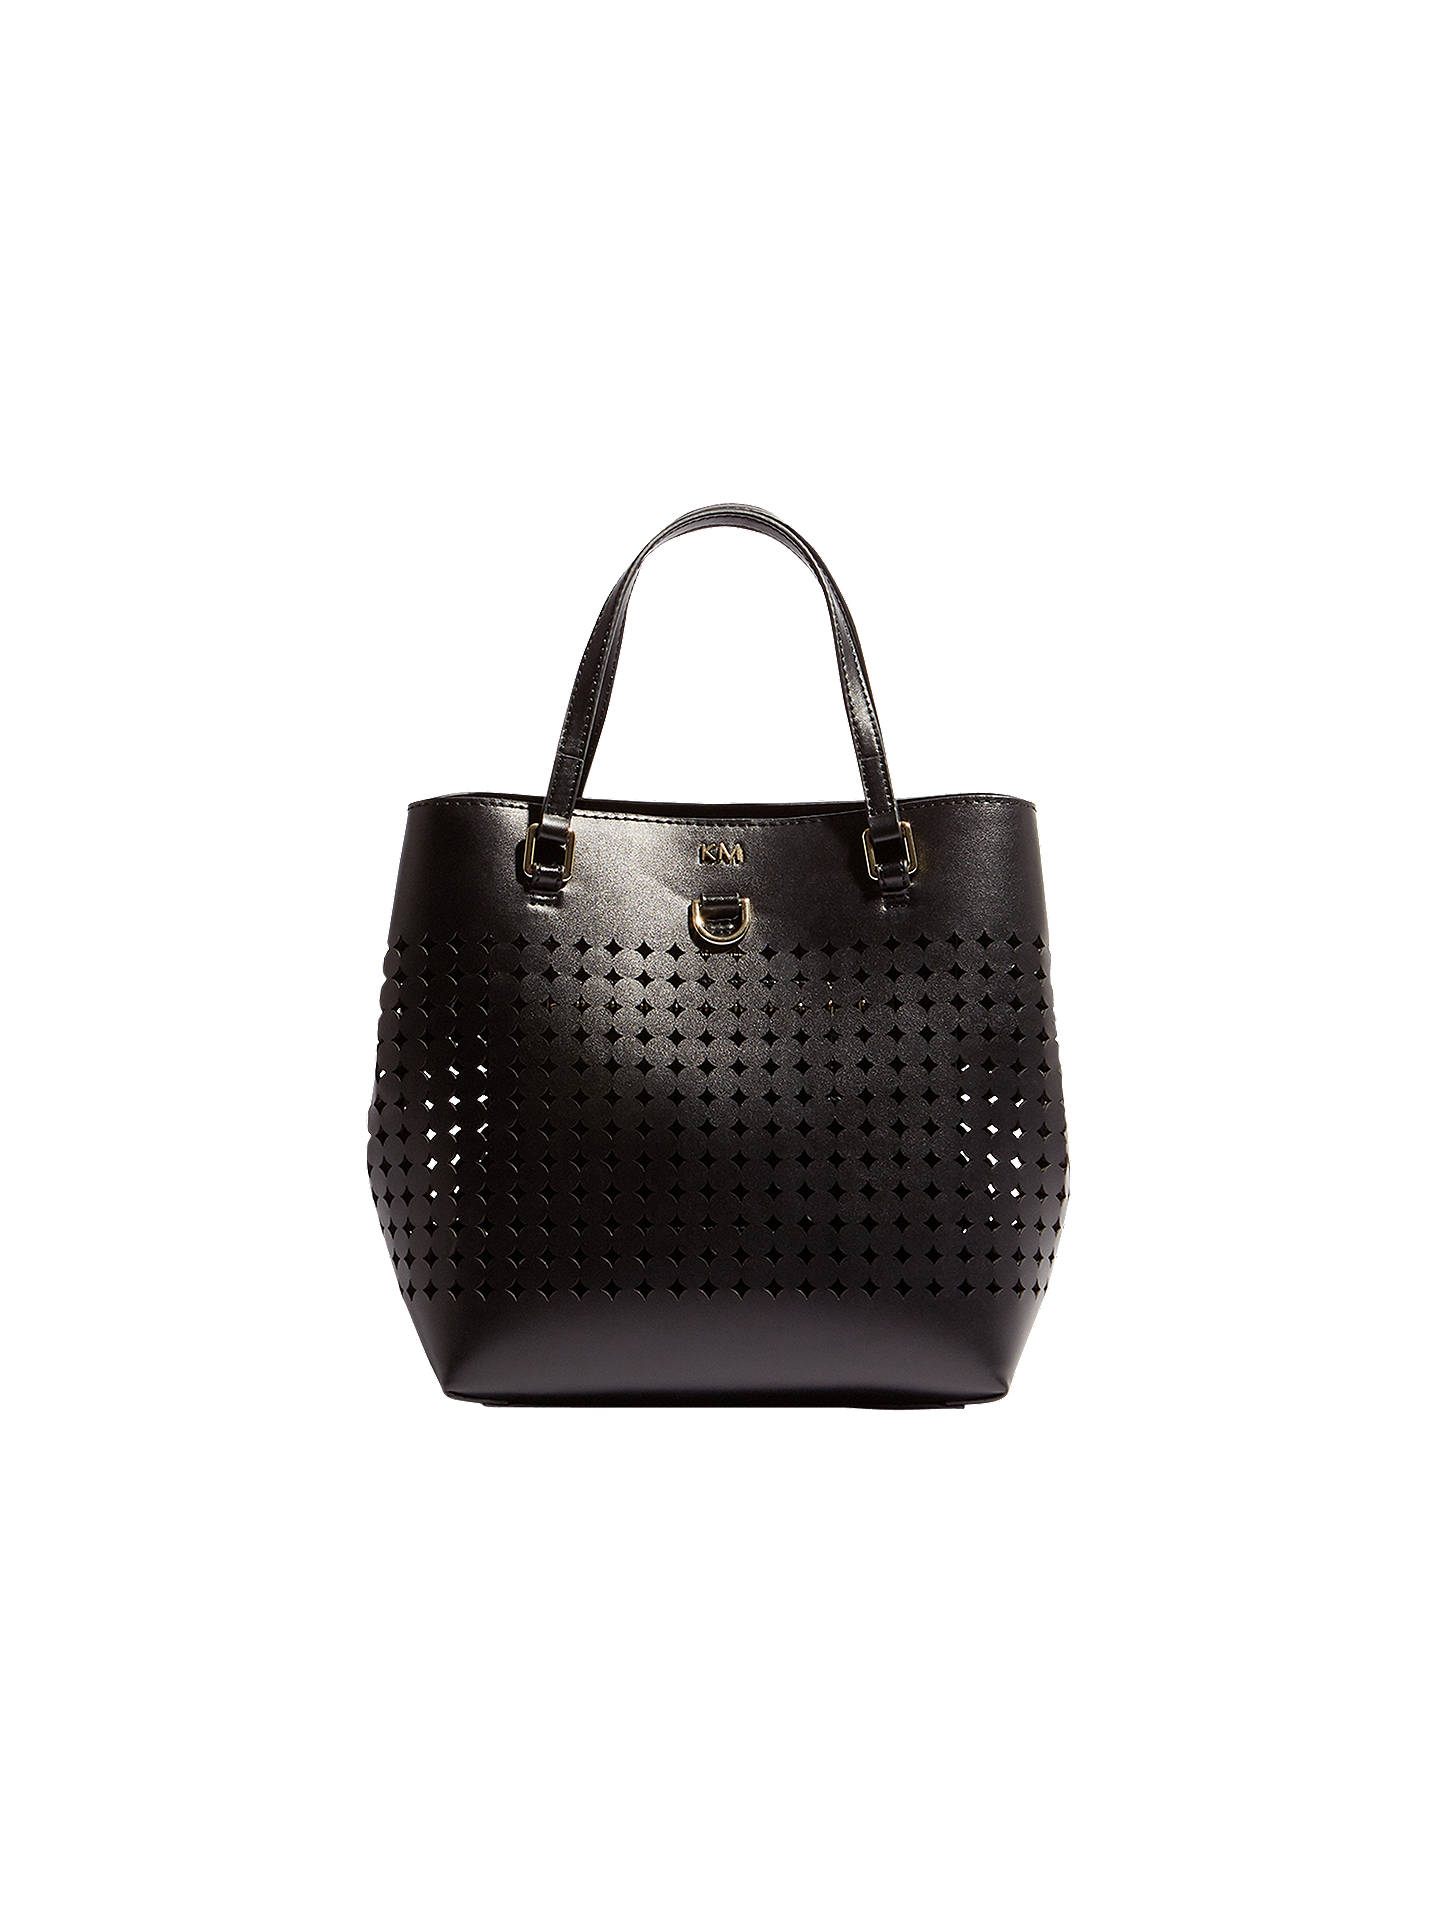 d87645cc5b Buy Karen Millen Perforated Mini Bucket Bag, Black Online at johnlewis.com  ...